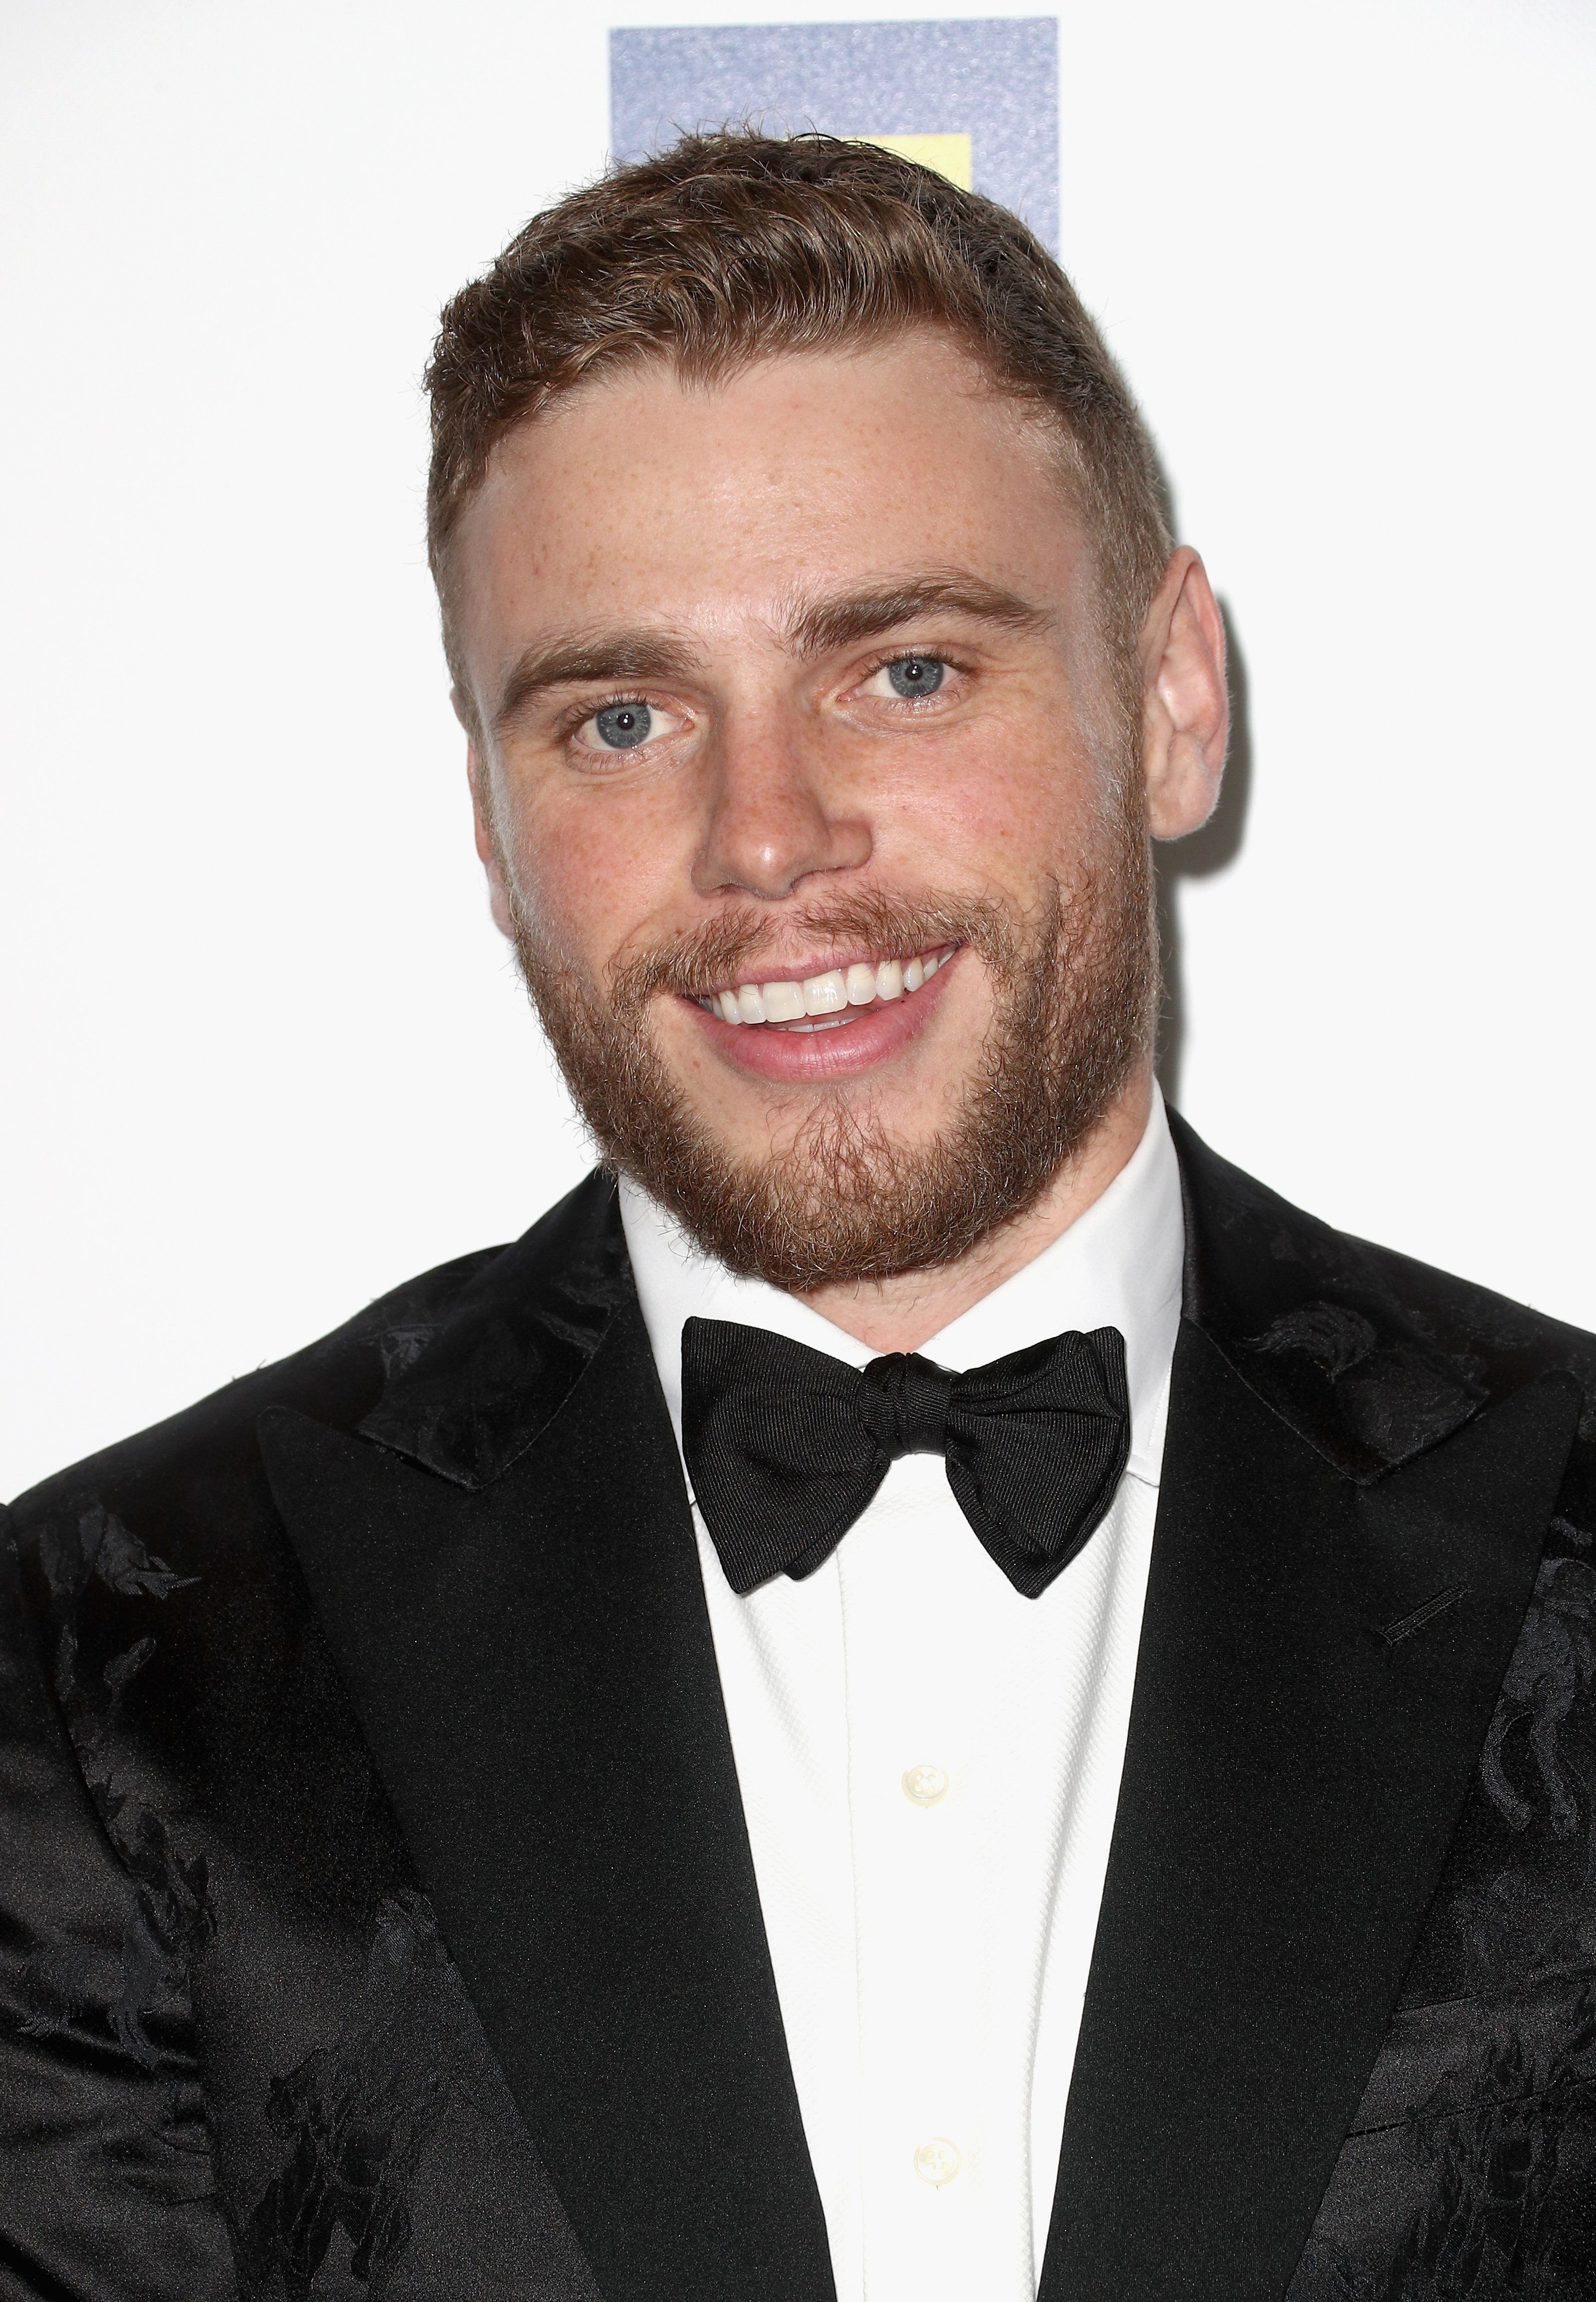 LOS ANGELES, CA - MARCH 10: Gus Kenworthy attends the Human Rights Campaign's 2018 Los Angeles Gala Dinner at JW Marriott Los Angeles at L.A. LIVE on March 10, 2018 in Los Angeles, California.  (Photo by Frederick M. Brown/Getty Images)